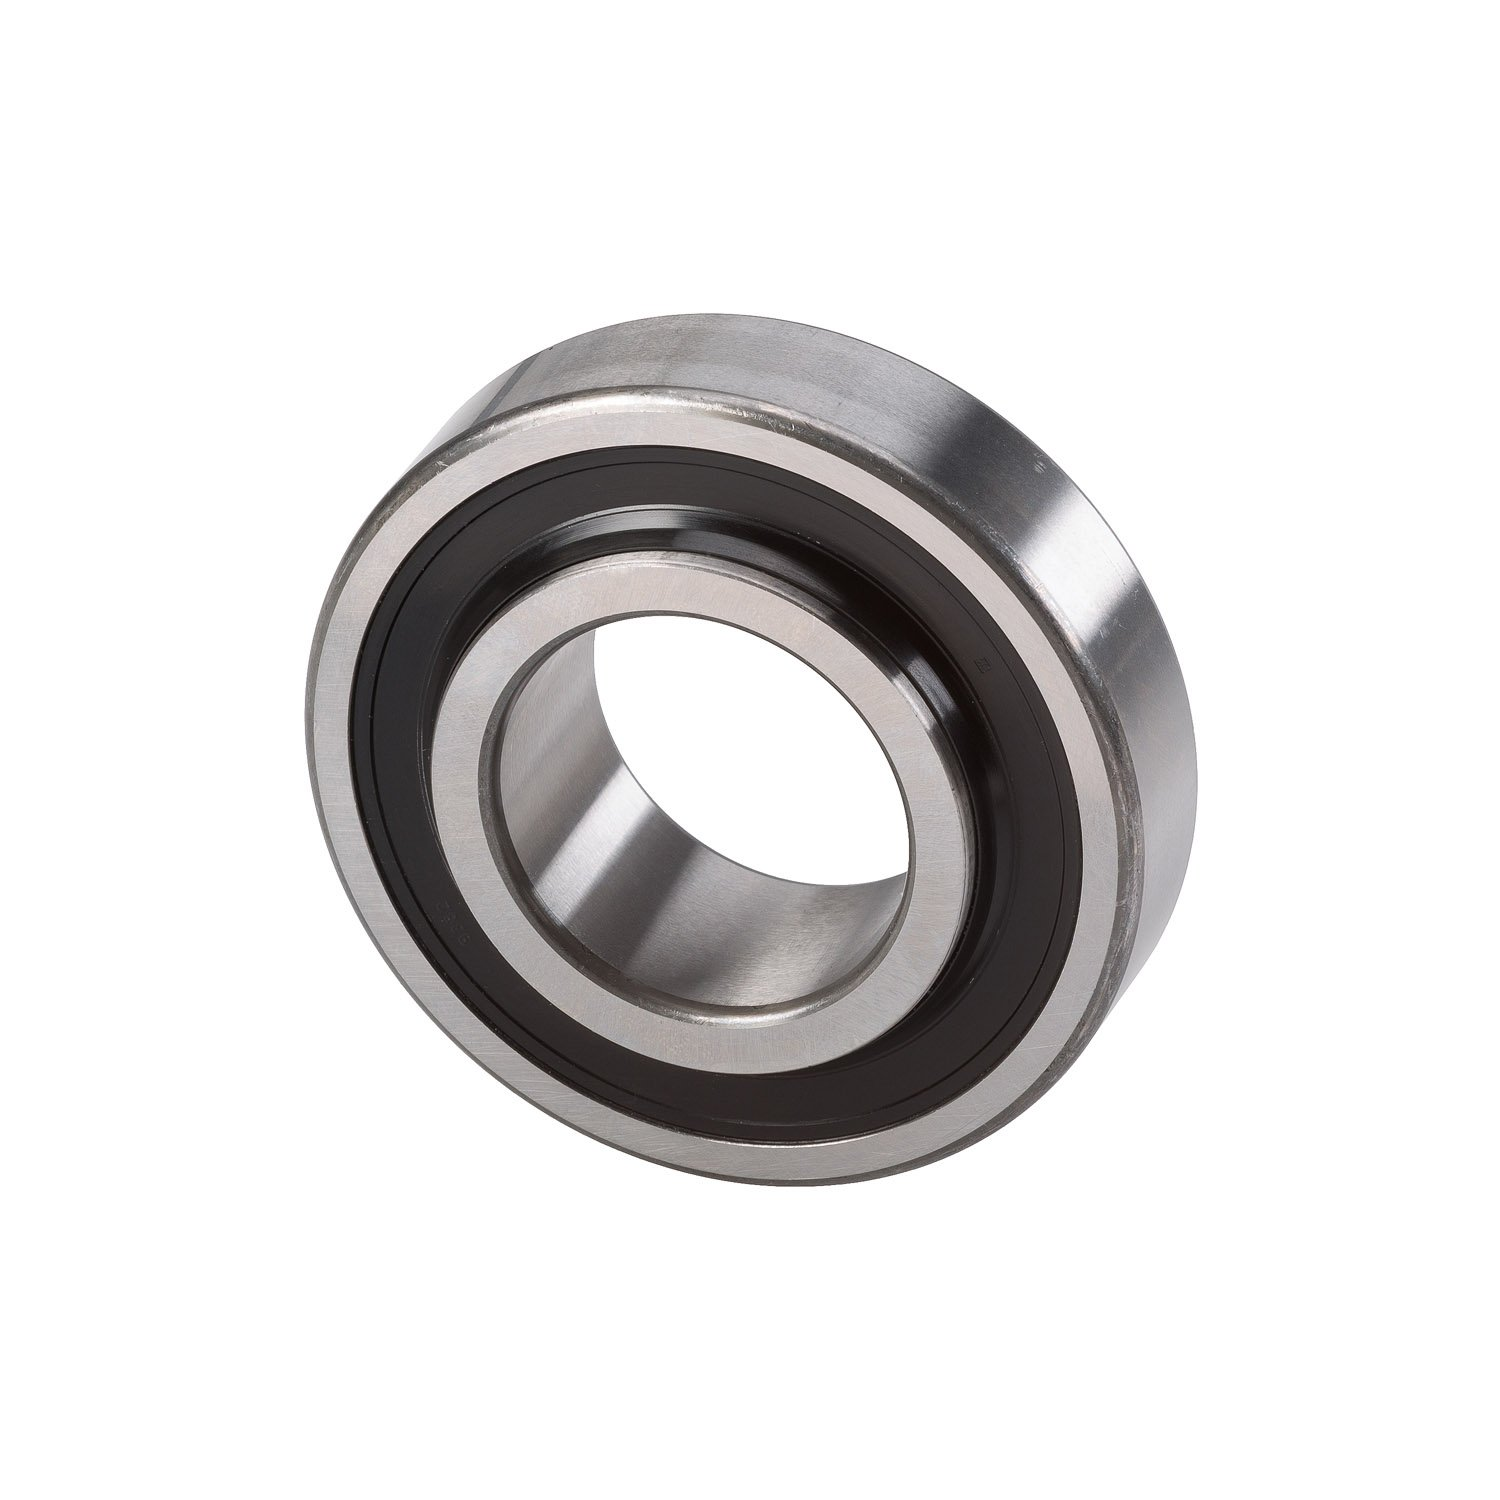 Inch Full Complement Drawn Cup 13//16 ID 1 Width Open 5200rpm Maximum Rotational Speed Koyo B-1316 Needle Roller Bearing 1-1//16 OD